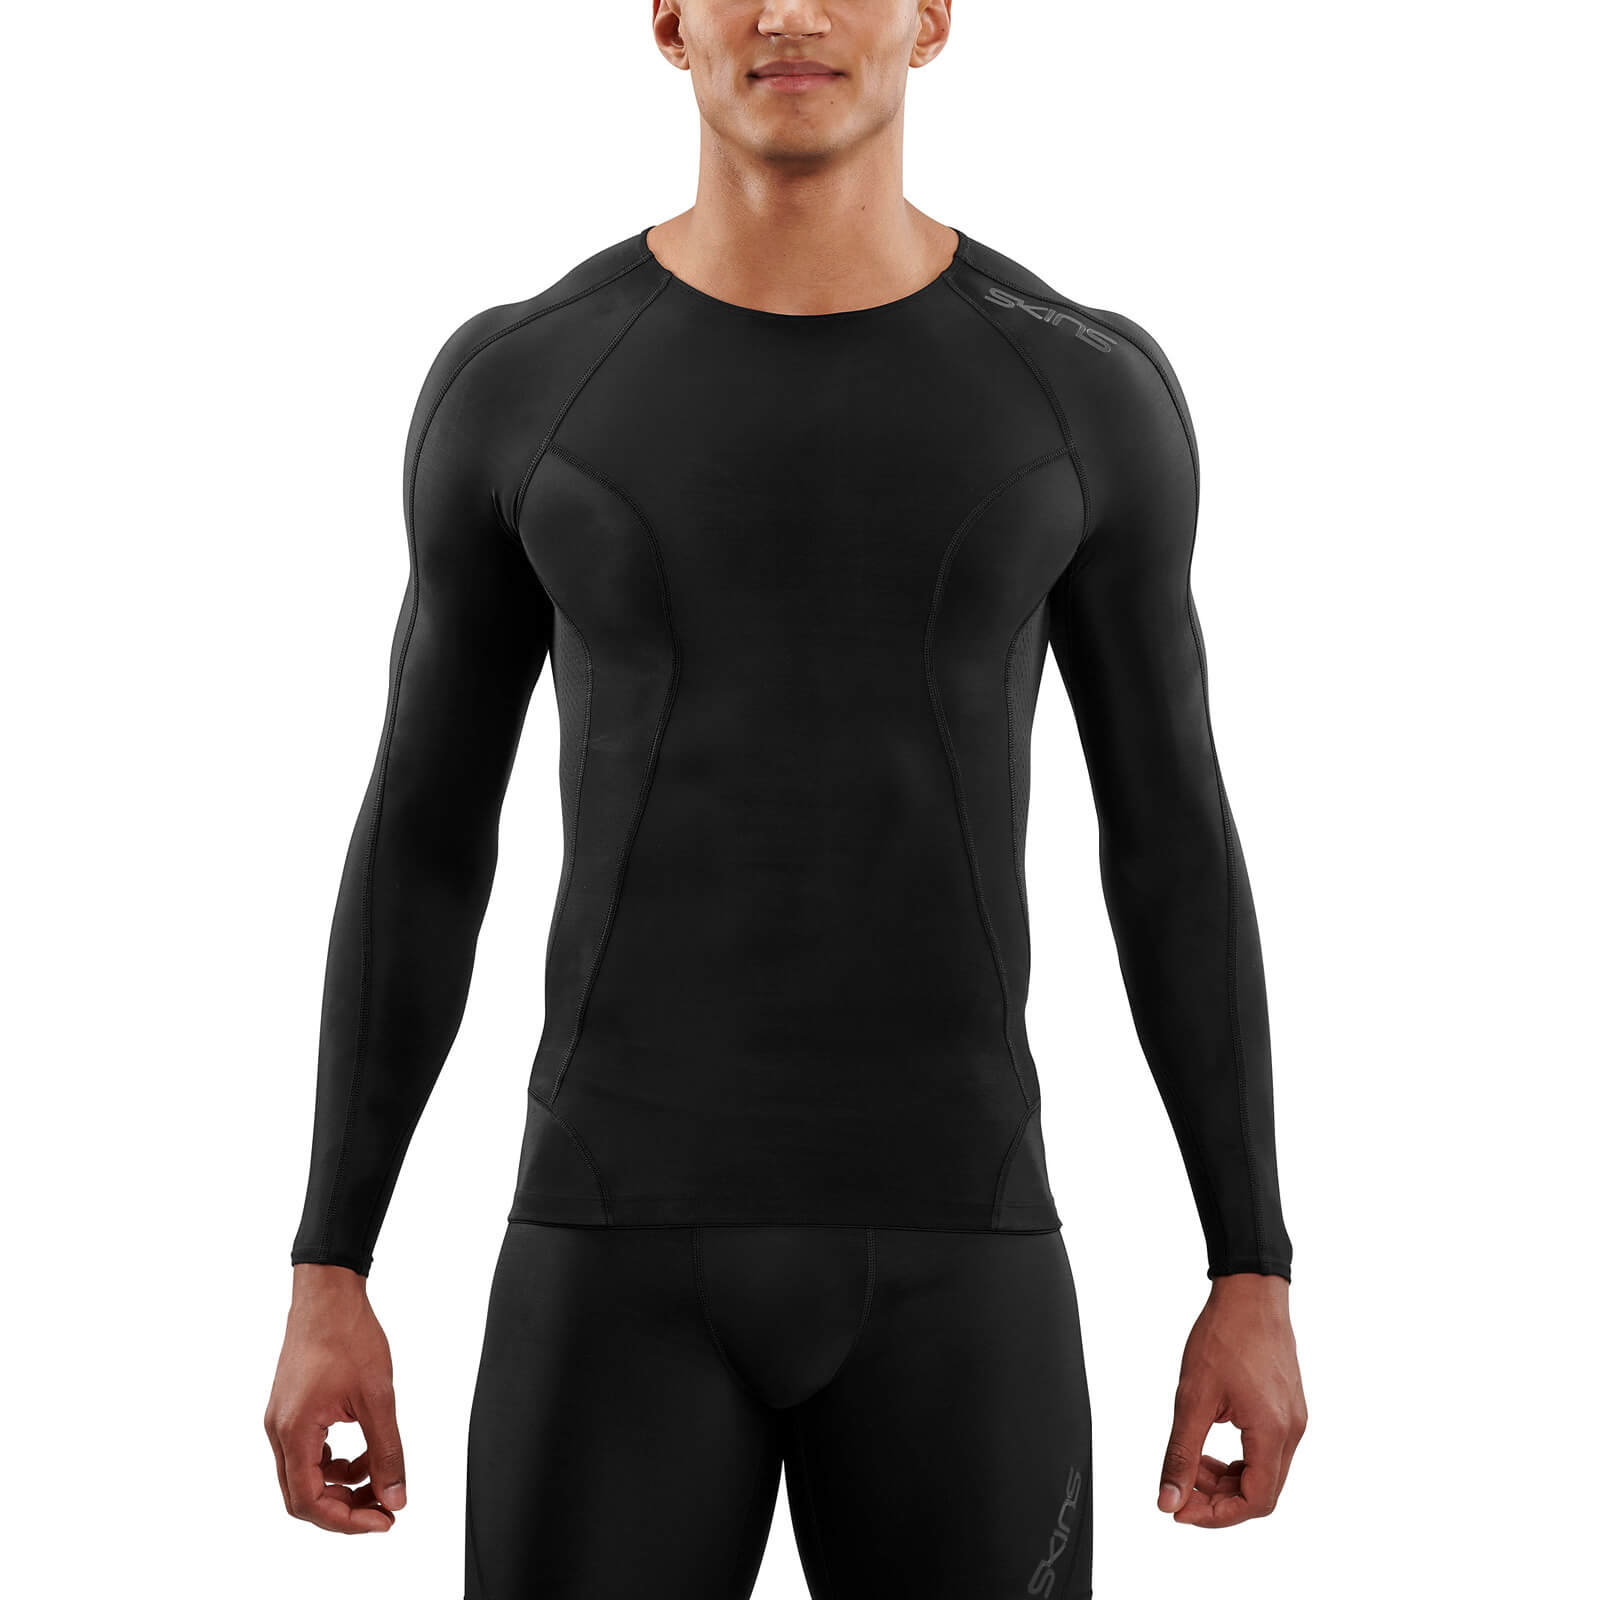 Skins DNAmic Long Sleeve Top - Black/Black